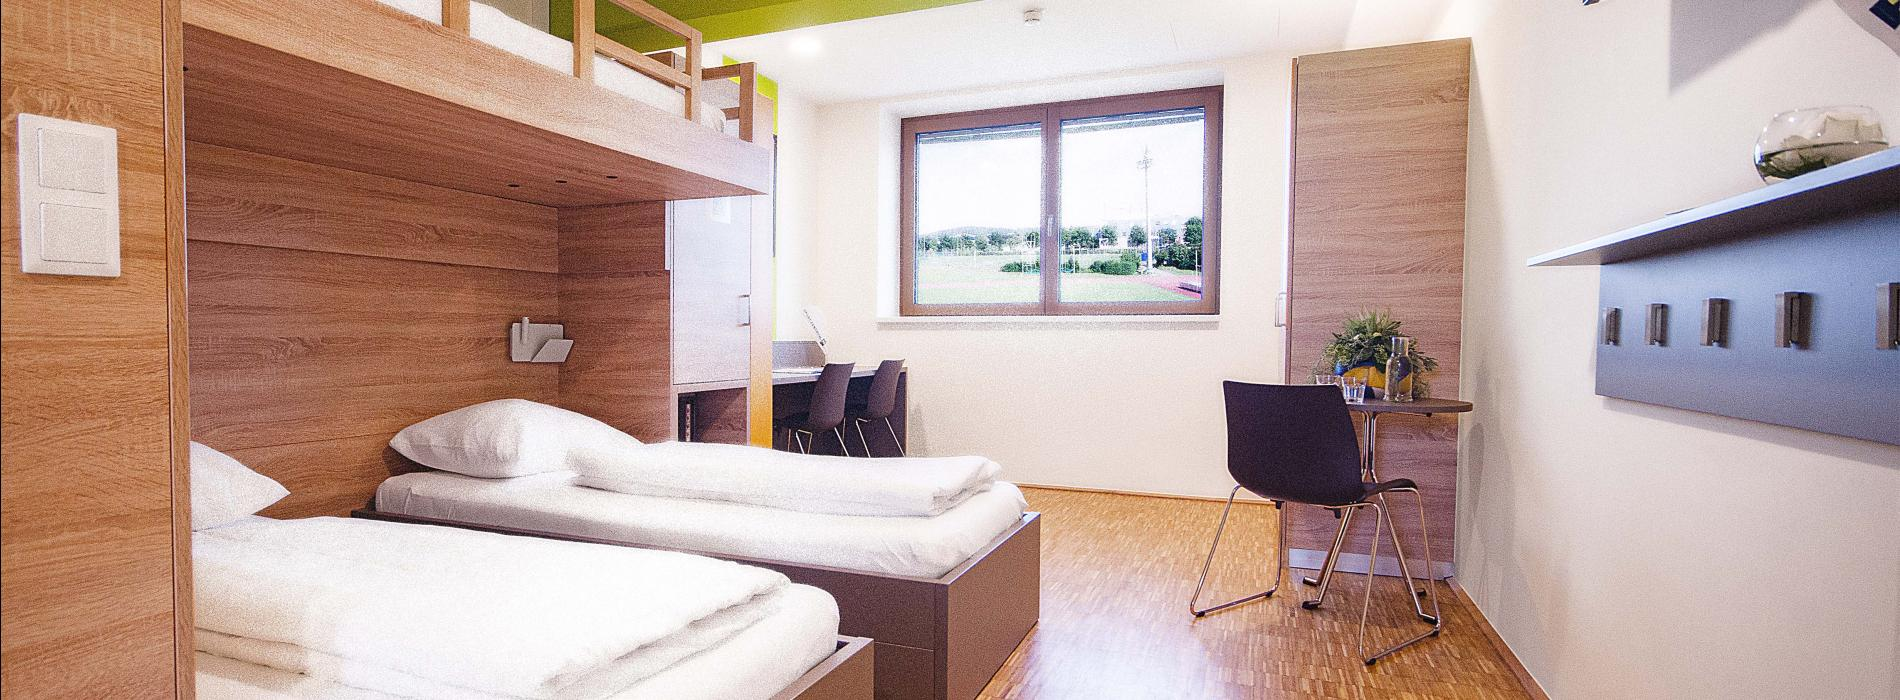 rooms & prices